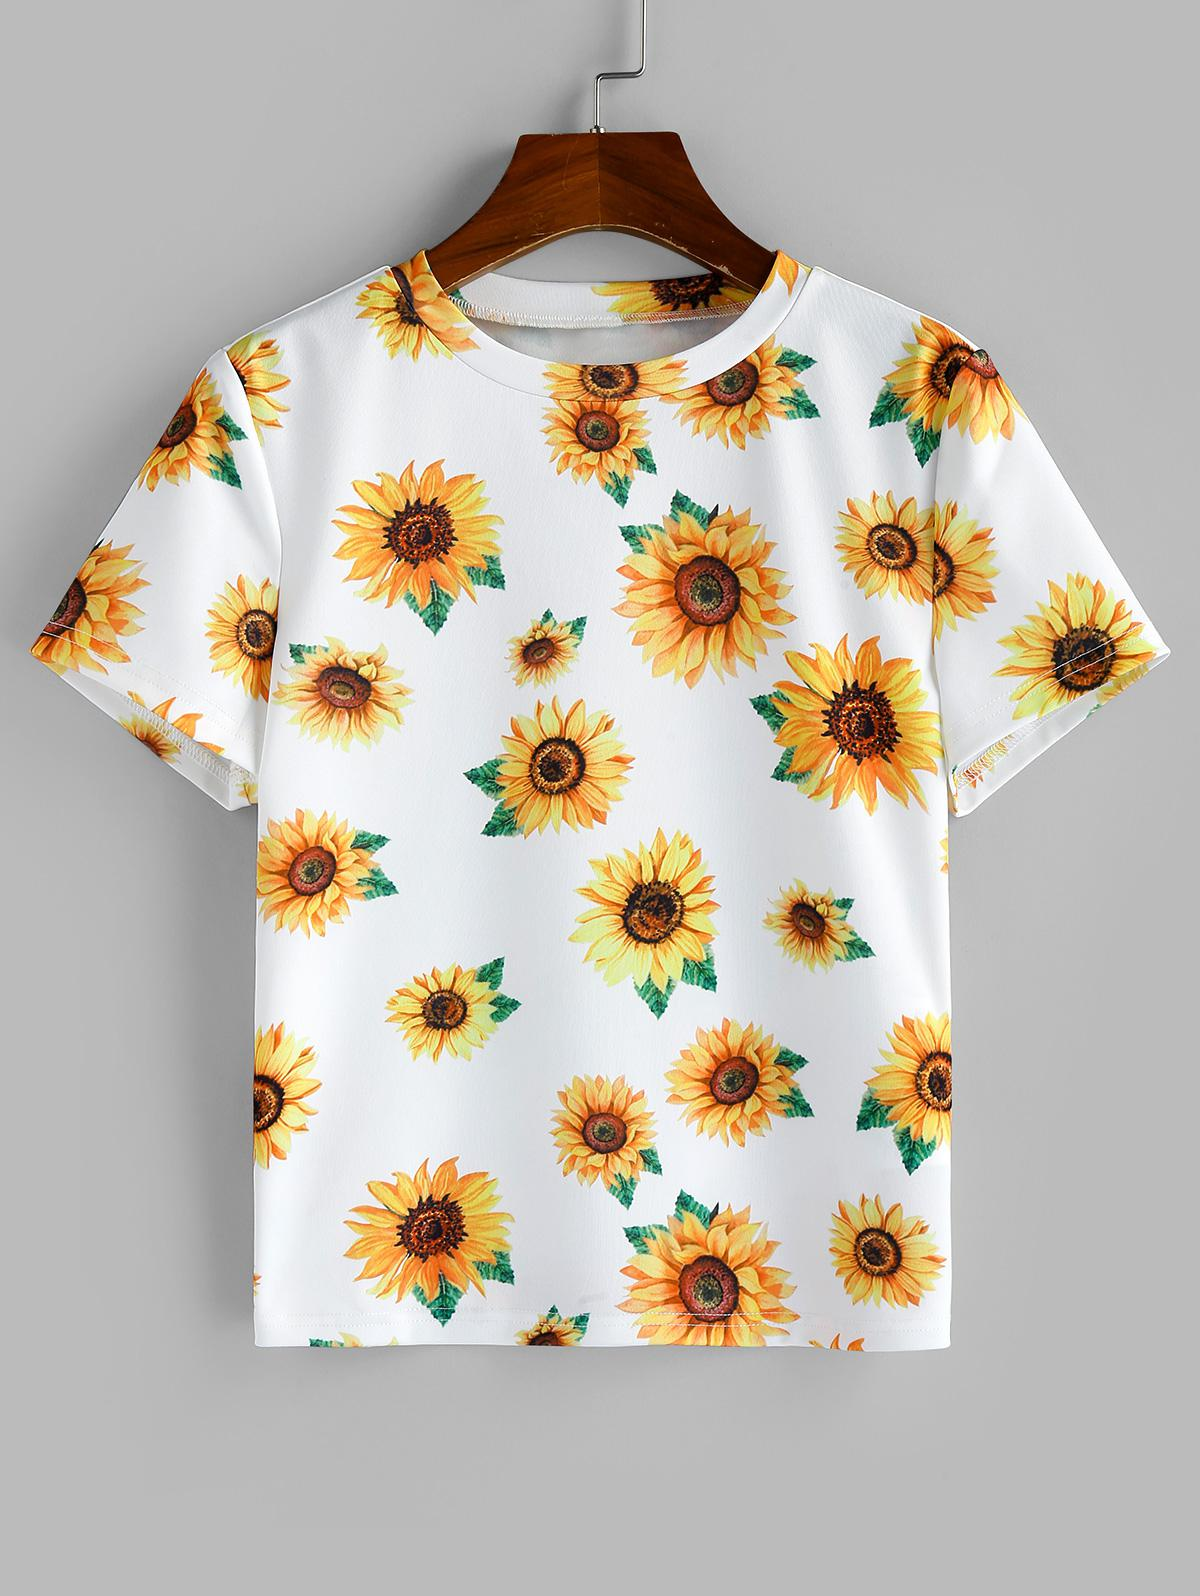 Sunflower Printed Short Sleeve T-shirt